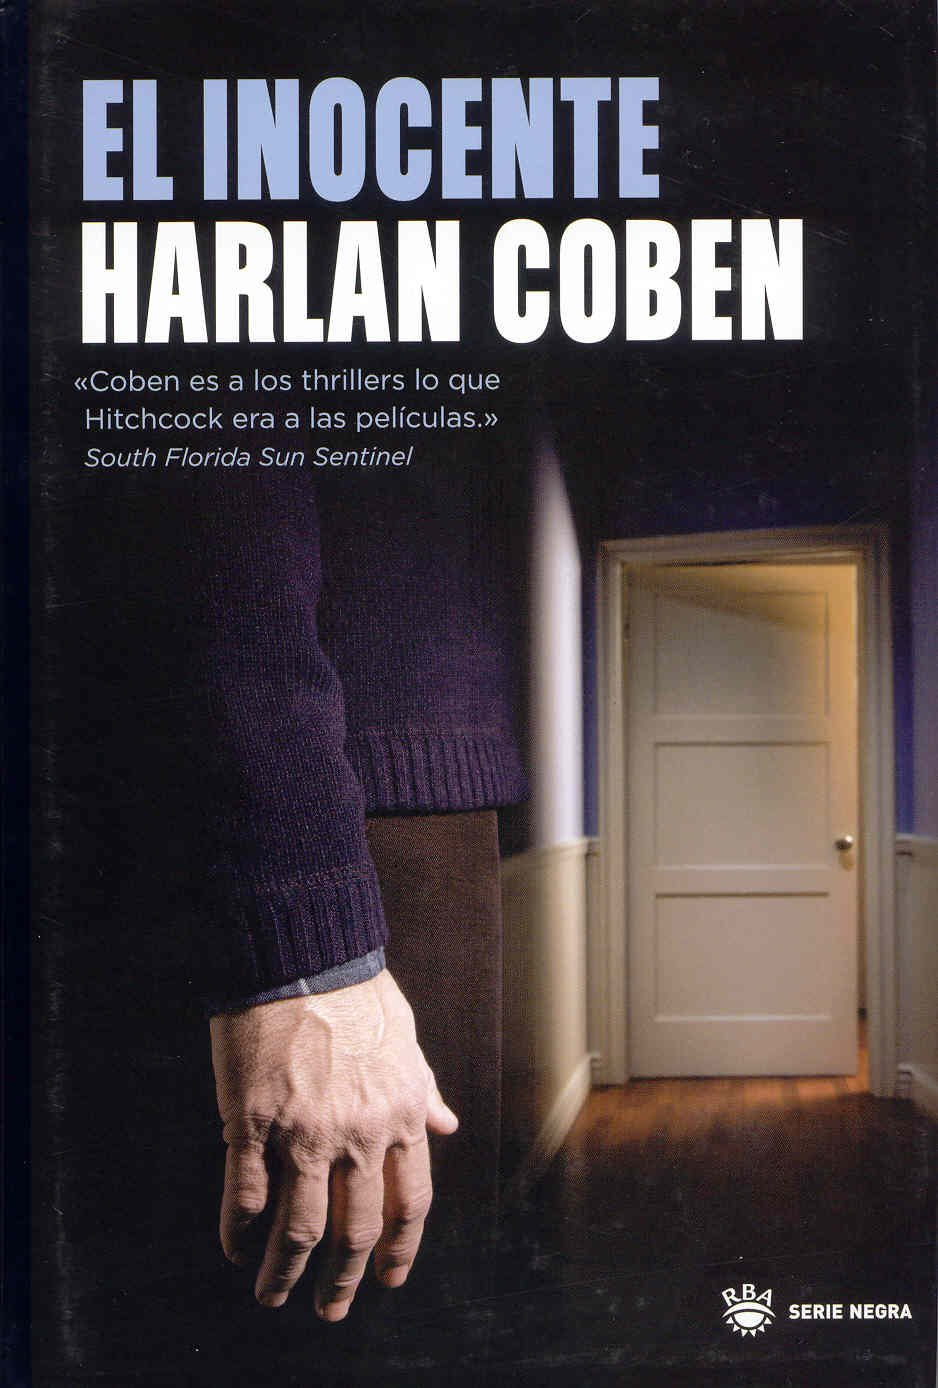 Inocente, El (Spanish Edition) (Spanish) Hardcover – February 18, 2011